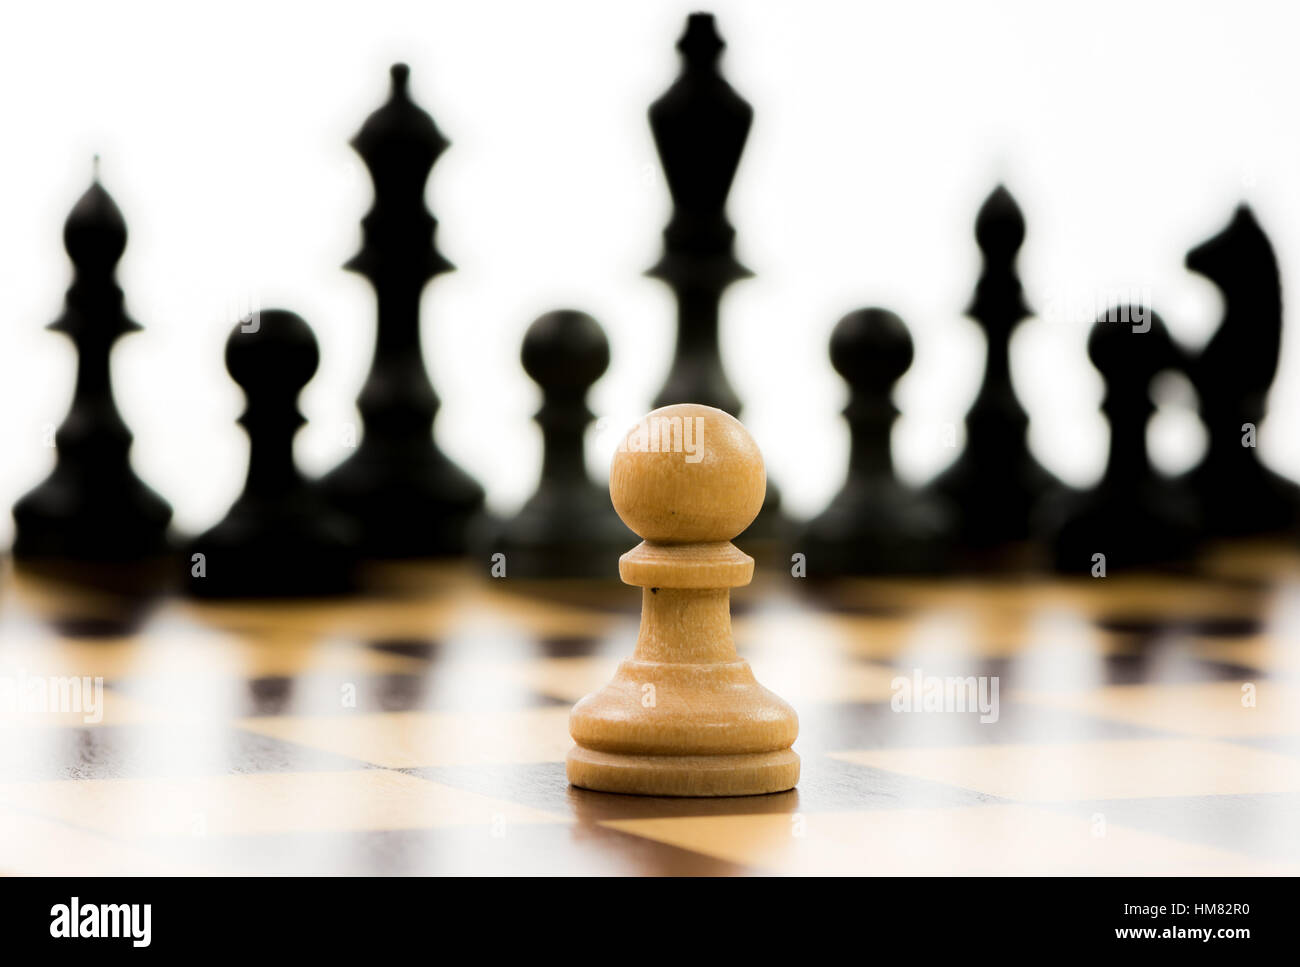 White pawn against a superiority of black chess pieces on a chess board. Selective focus. - Stock Image